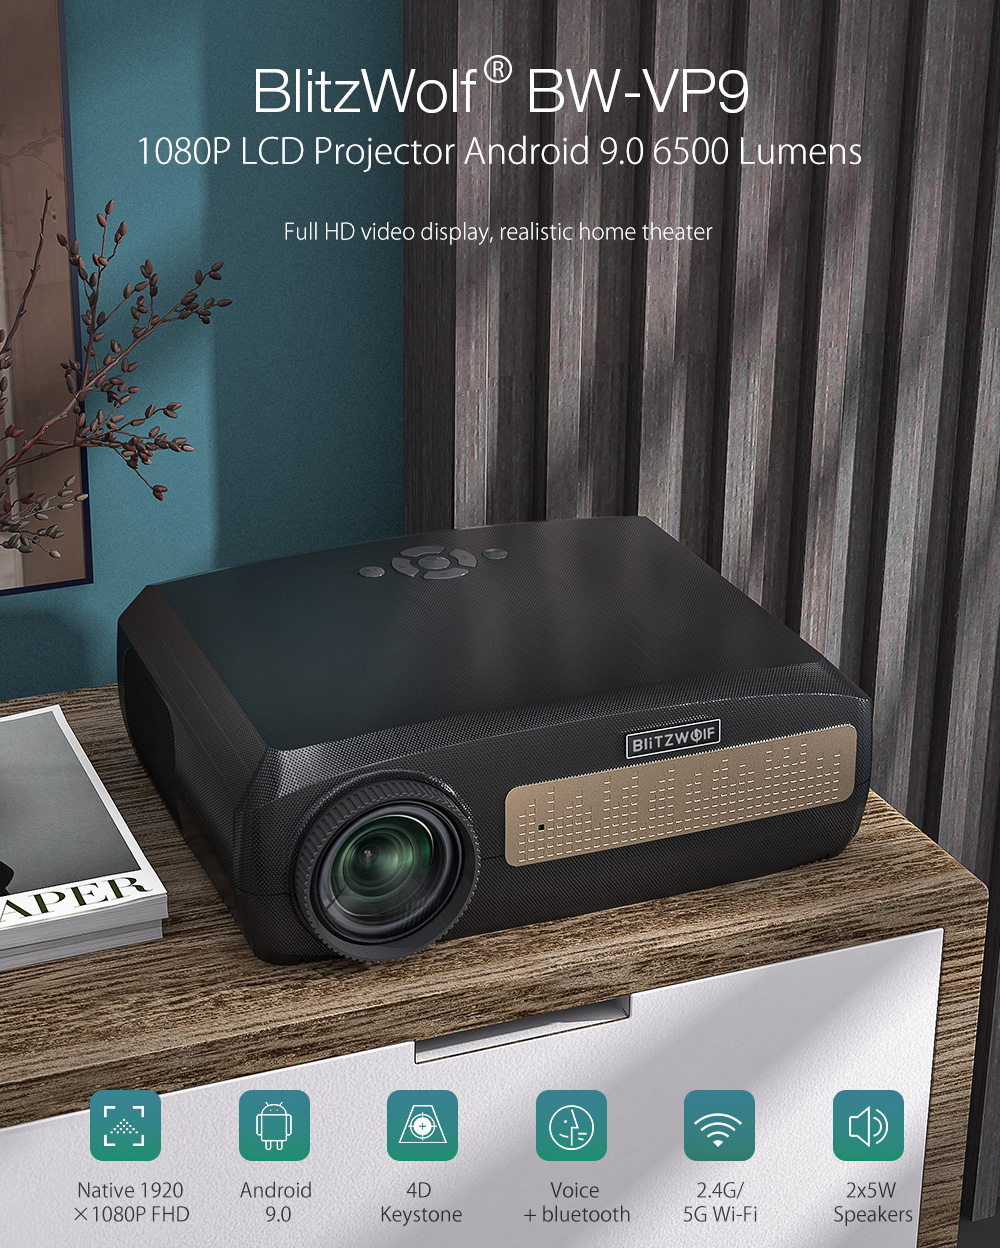 Blitzwolf BW-VP9 Android projector